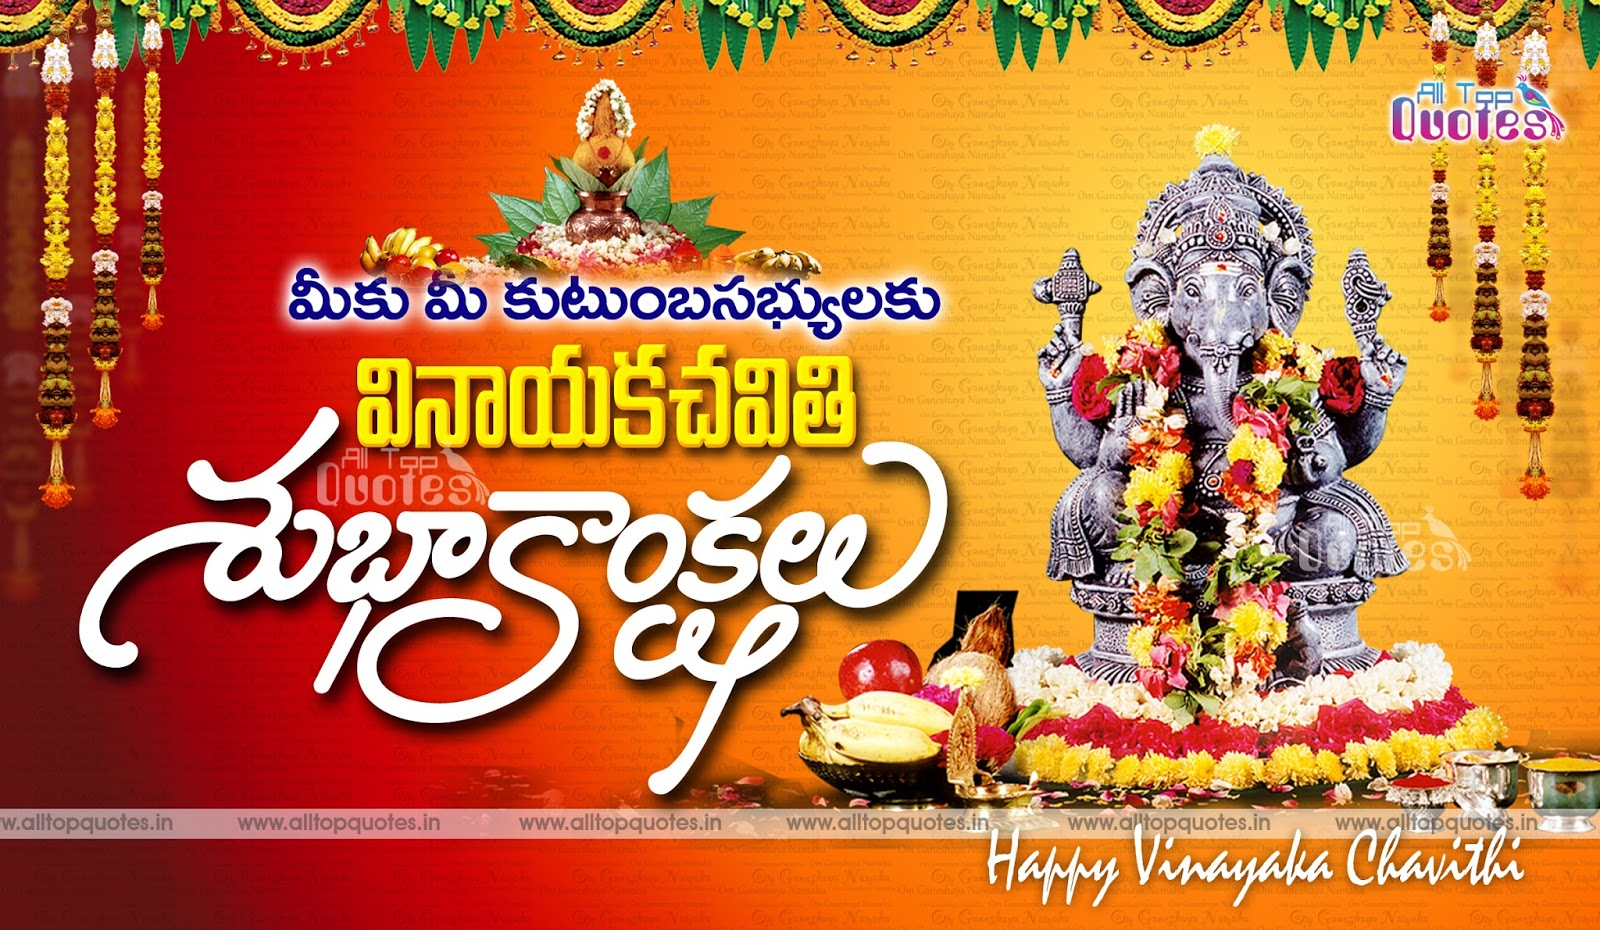 Varalakshmi vratam wishes in telugu hd wallpapers inspiration quotes varalakshmi vratam wishes in telugu hd wallpapers inspiration quotes vasantha panchami greetings pictures telugu quotes images free good morning m4hsunfo